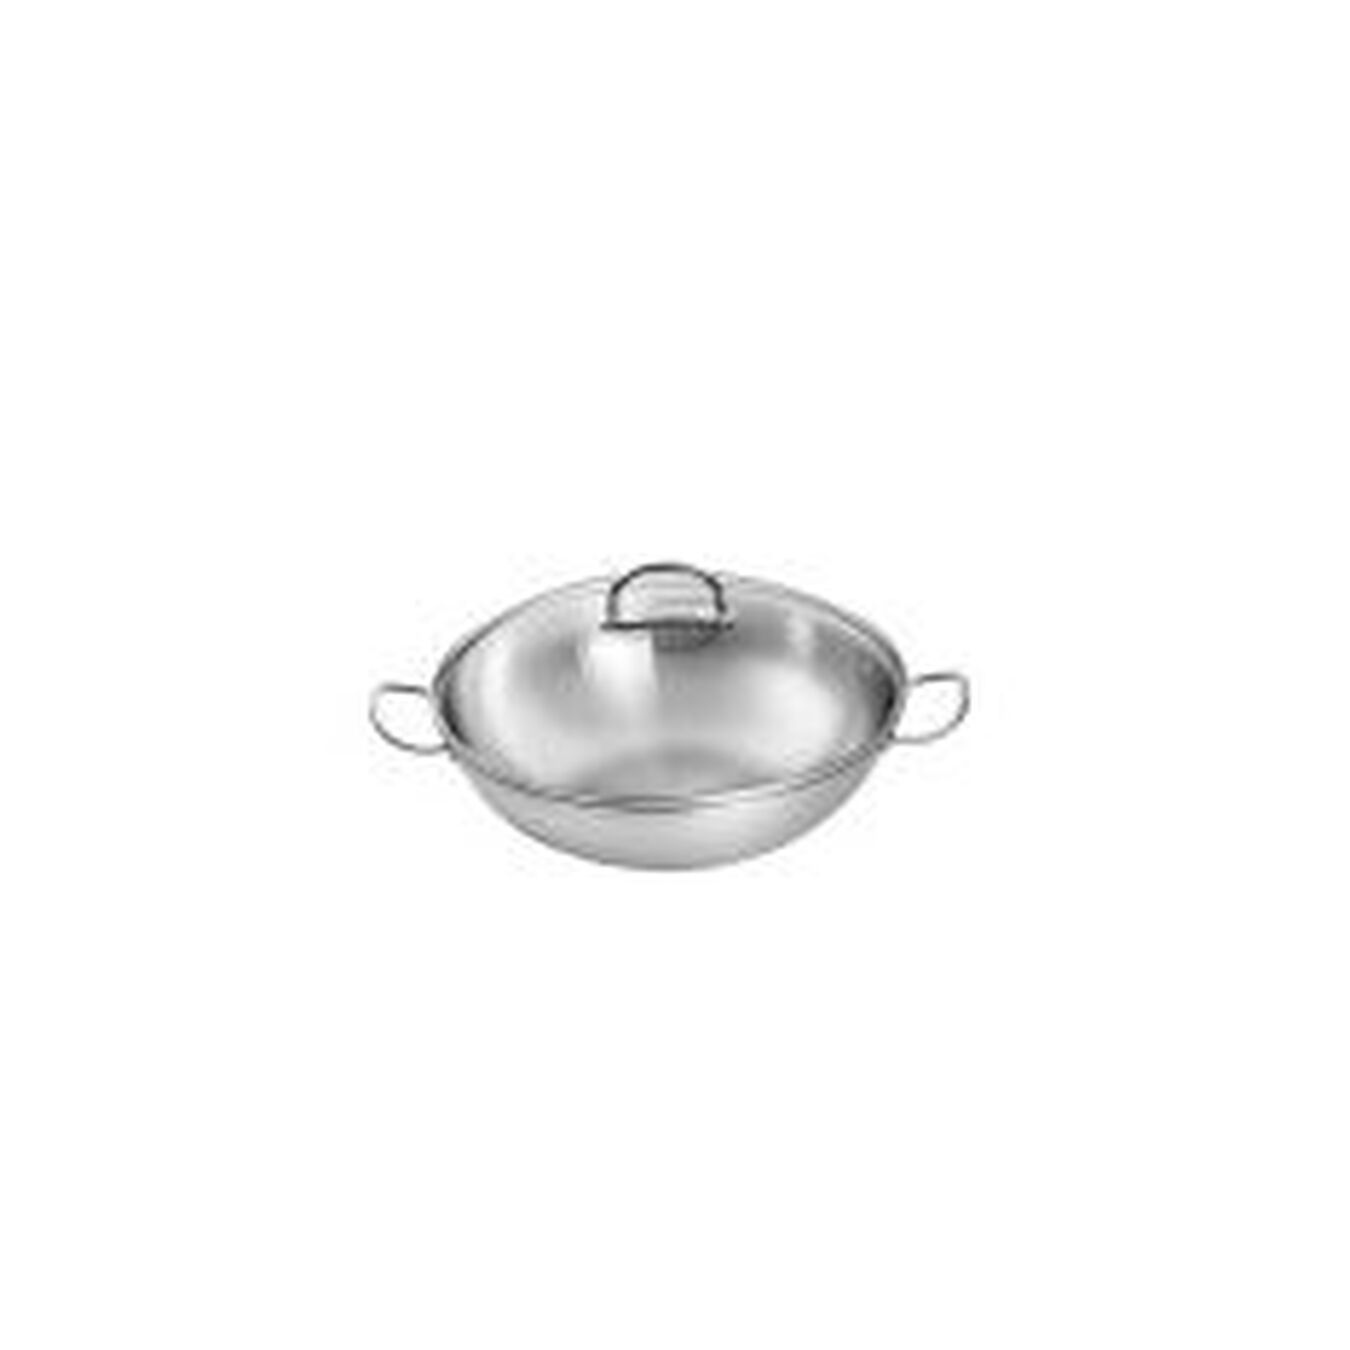 36 cm / 14 inch 18/10 Stainless Steel Wok,,large 5